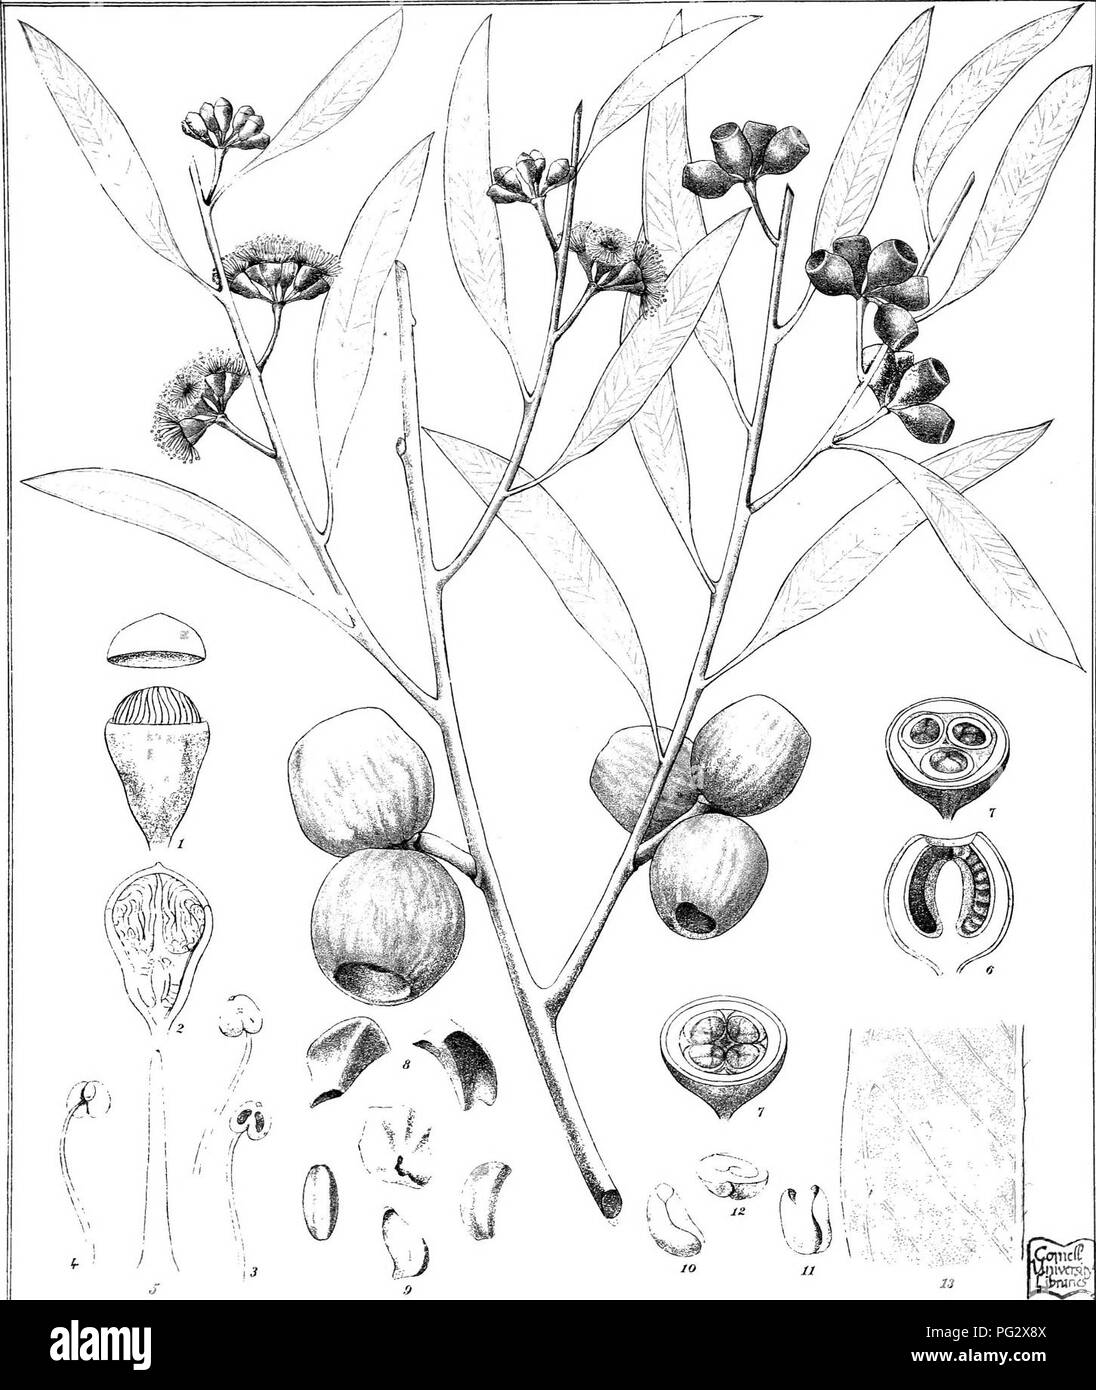 """. Eucalyptographia. A descriptive atlas of the eucalypts of Australia and the adjoining islands;. Eucalyptus; Botany. Toit del. C-Tr;e deli â â -â '> Litf.. F.-vrM. dirent 3t°iiti_ Lilho Gov Printm^ Ci:. .""""Â«' ' ai(gn]^te© ^M]pi?(i^fe. Please note that these images are extracted from scanned page images that may have been digitally enhanced for readability - coloration and appearance of these illustrations may not perfectly resemble the original work.. Mueller, Ferdinand von, 1825-1896. Melbourne, J. Ferres, Govt. Print; [etc. ,etc. ] - Stock Image"""